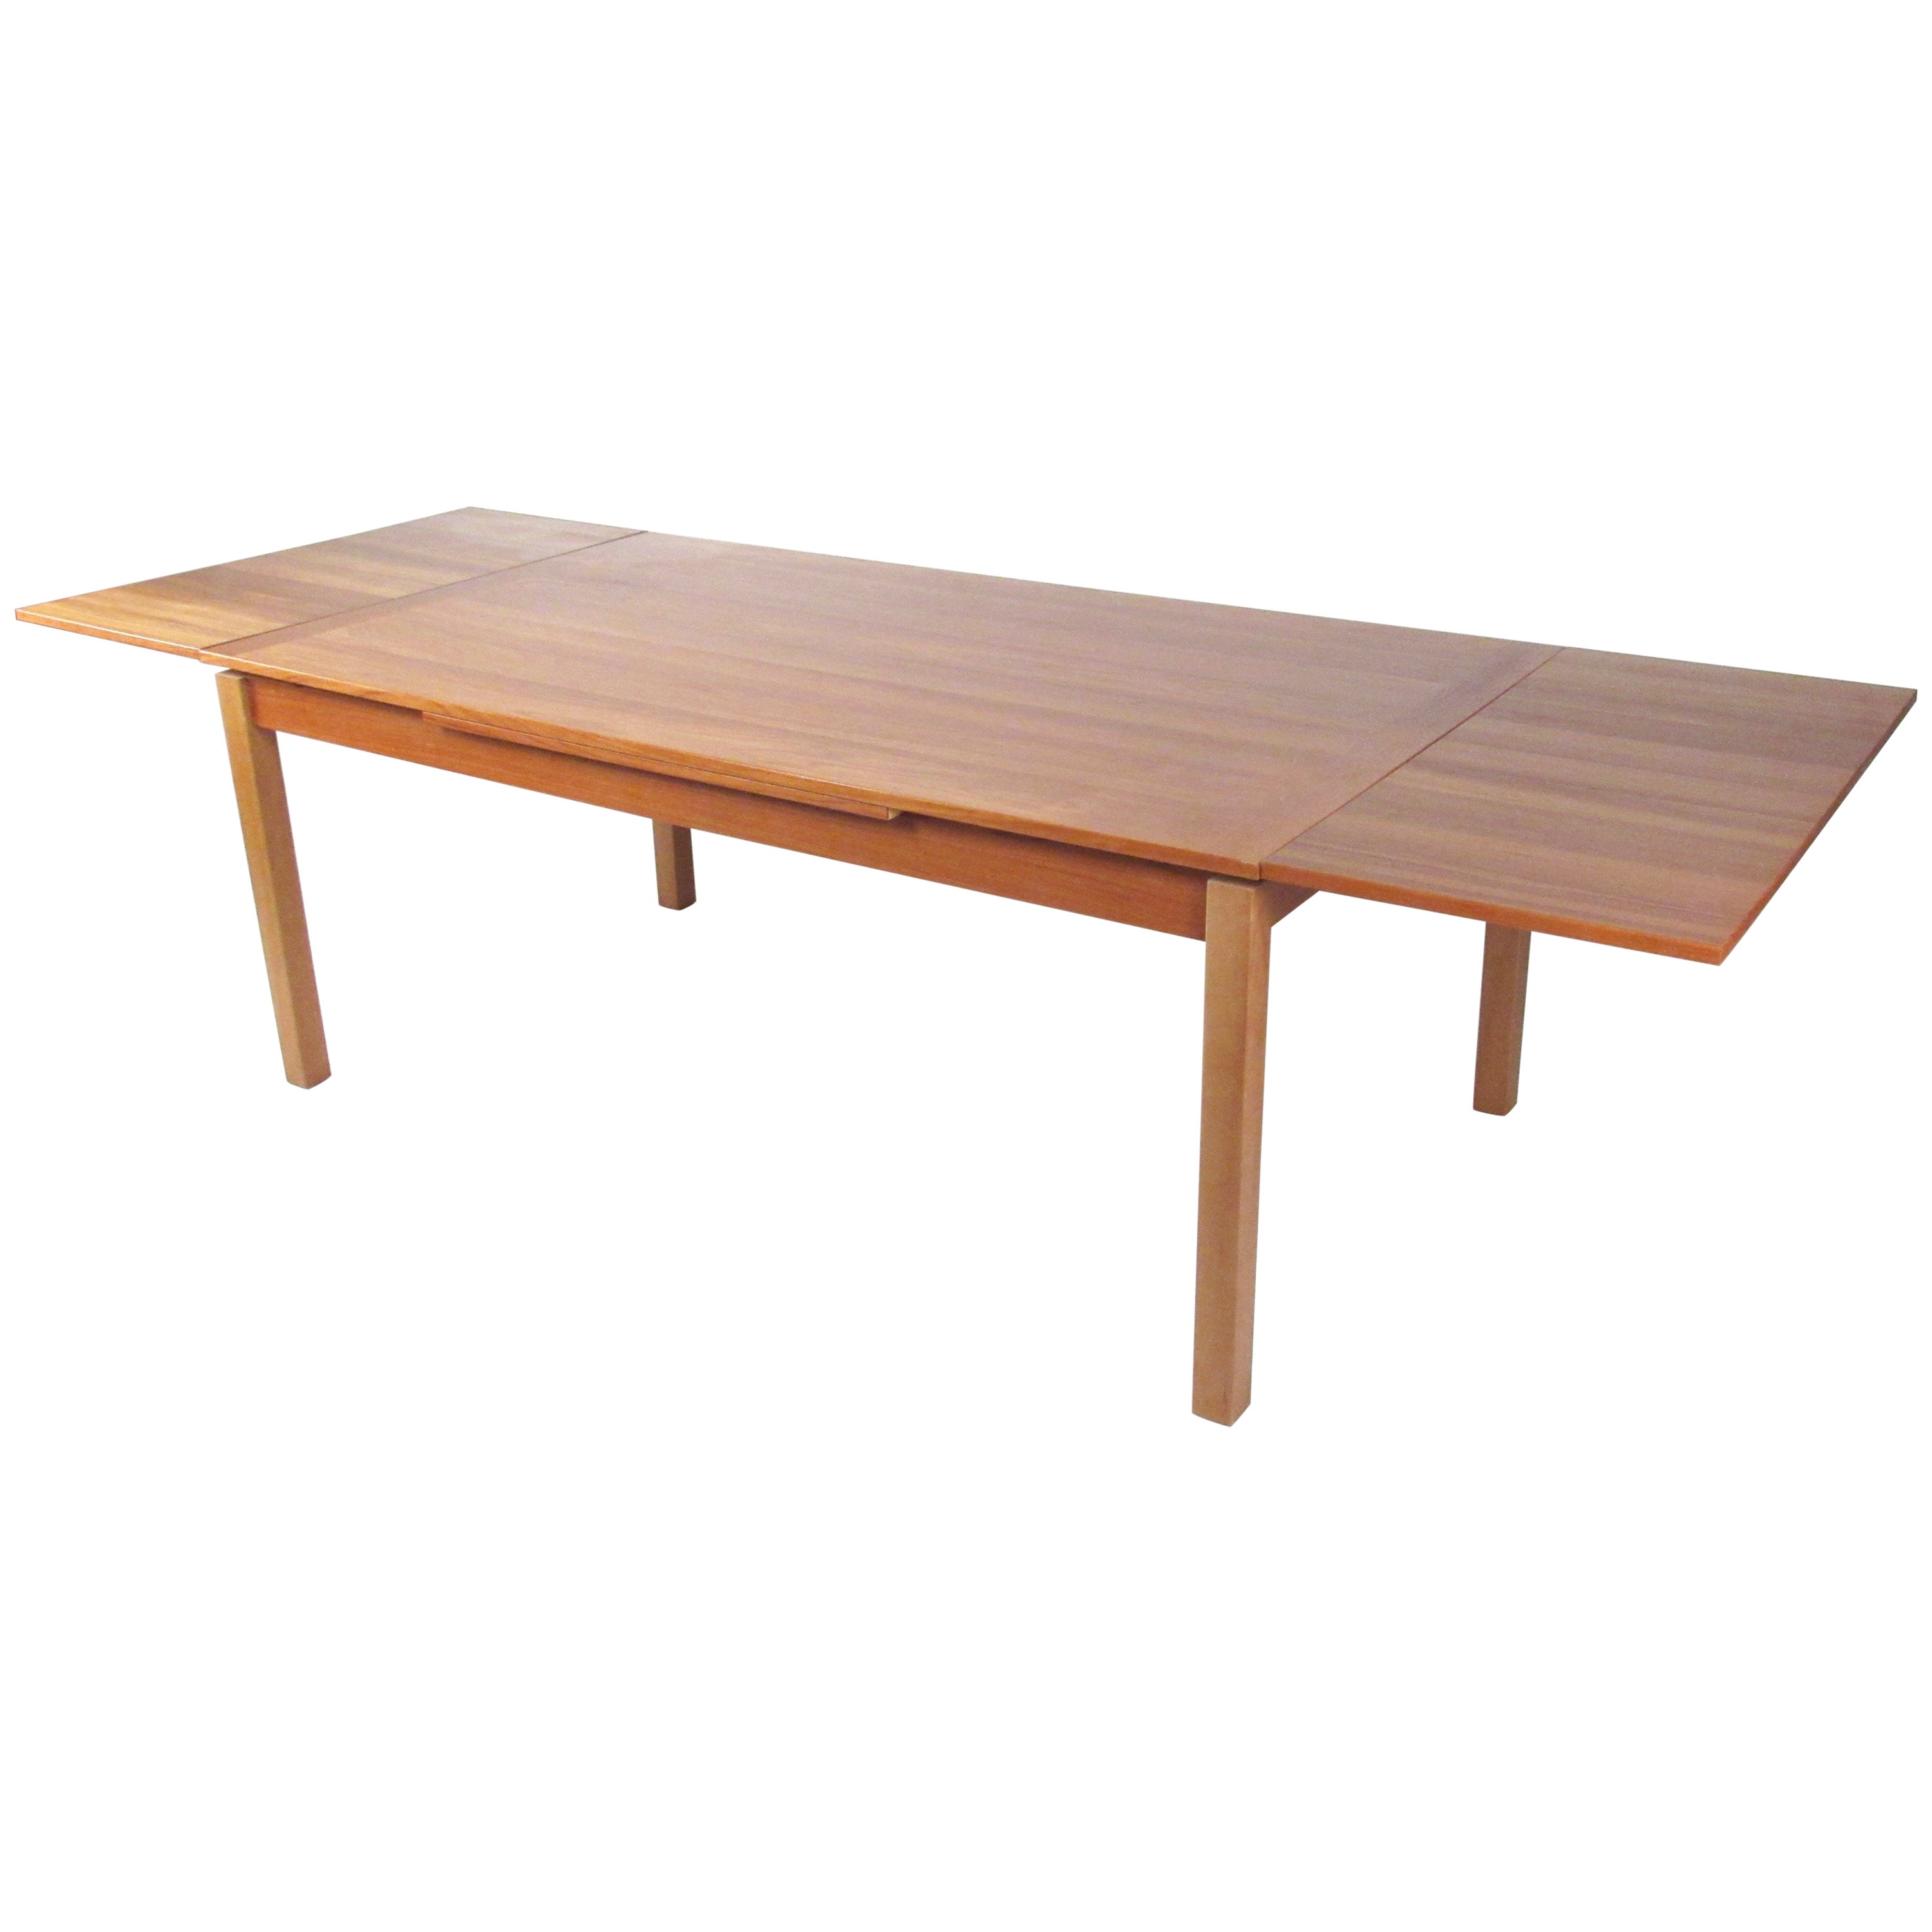 Scandinavian Modern Teak Dining Table with Draw Leaf Extension